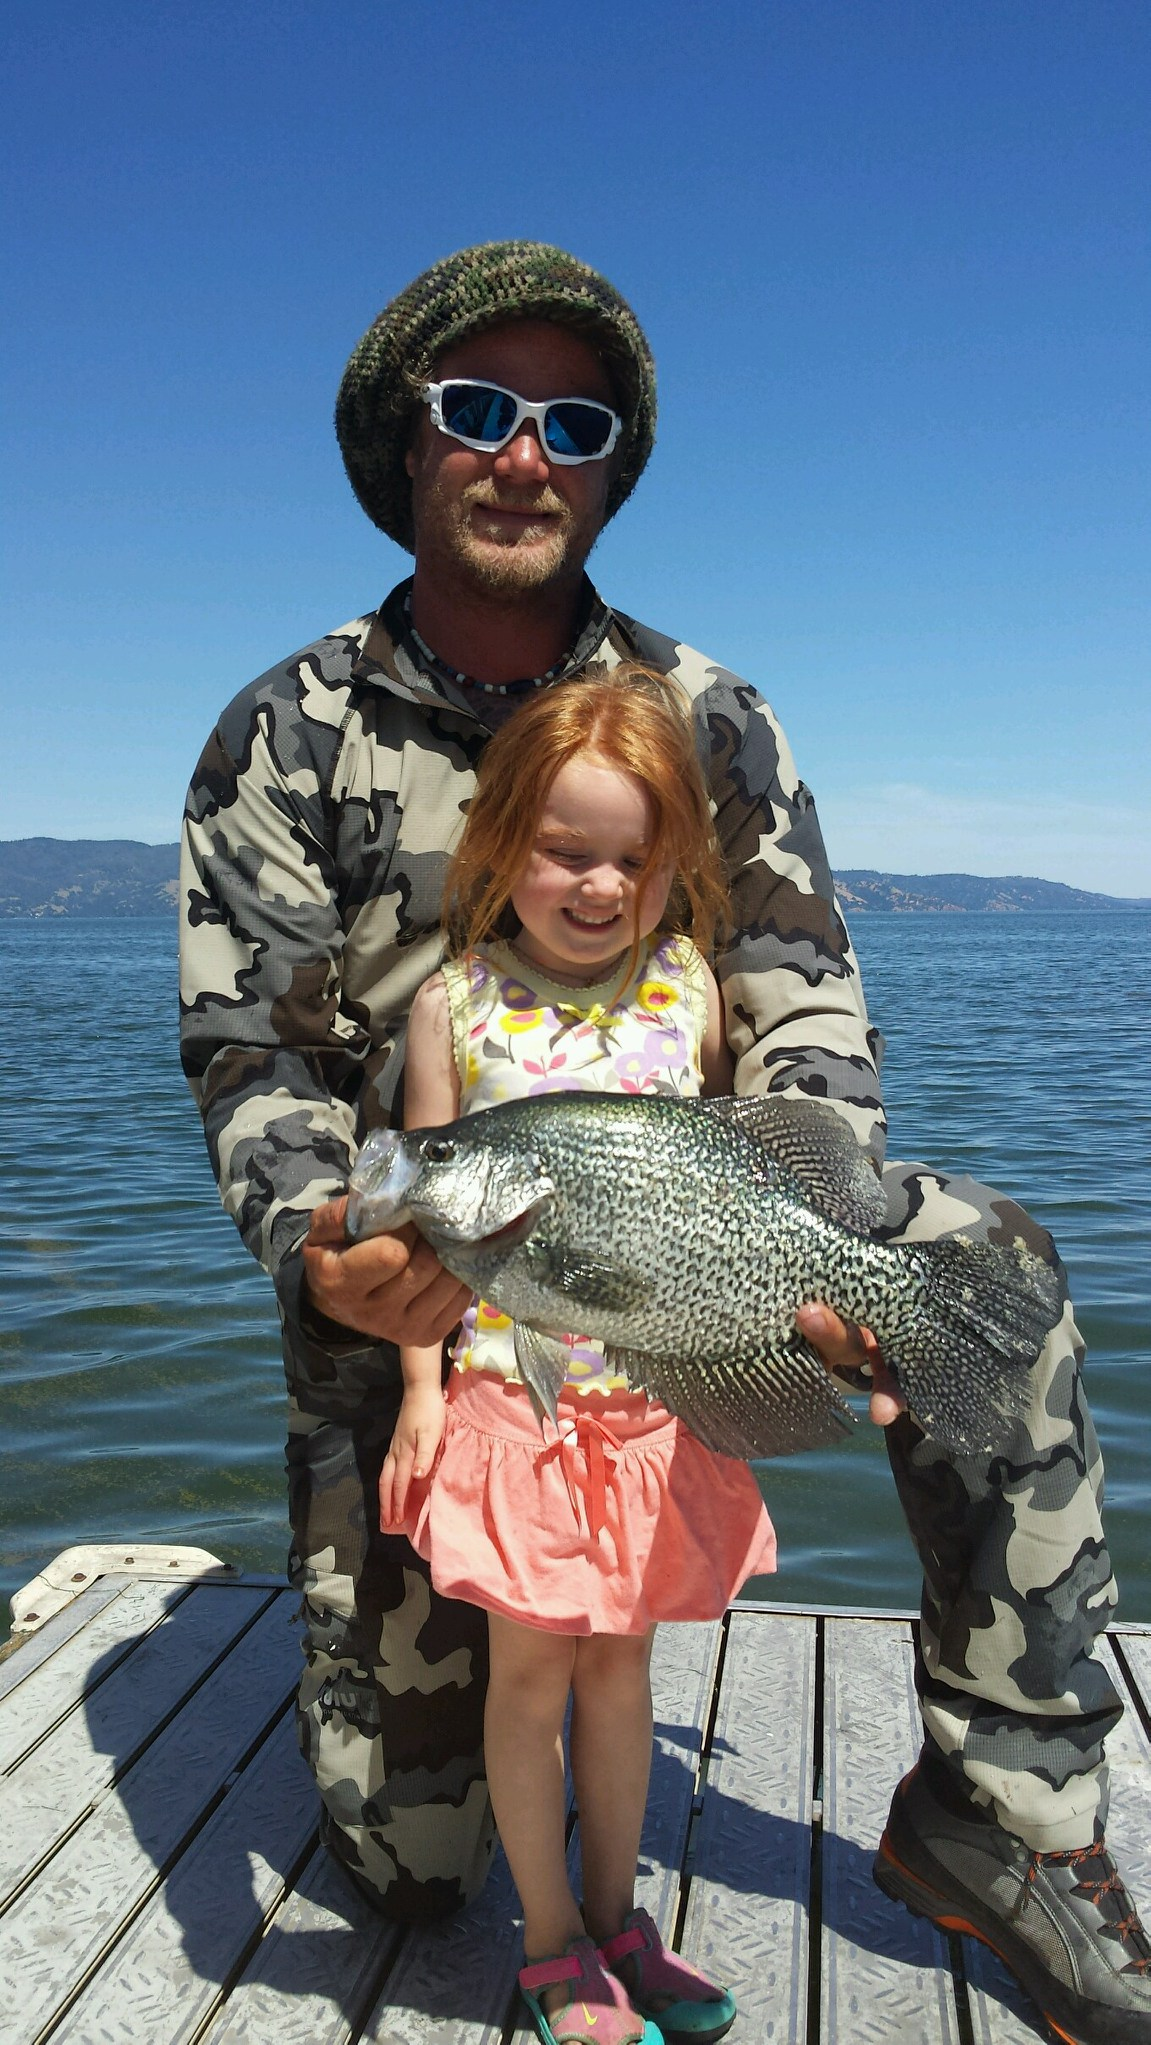 """Nate and Daughter """"Baby G"""" with a beautiful Clearlake Crappie.  Mike's Fishing Guide Service for Northern California salmon fishing guided adventures, and Sacramento River Fishing Guides.Targeting Sacramento River Salmon, Sacramento River Striped Bass, White Sturgeon on the Sacramento River, American Shad And Rainbow Trout, The Best Sacramento River Fishing Guide and Sacramento River Salmon and Striped Bass Fishing Guide On The Sacramento River. Sacramento River Fishing is our specialty."""